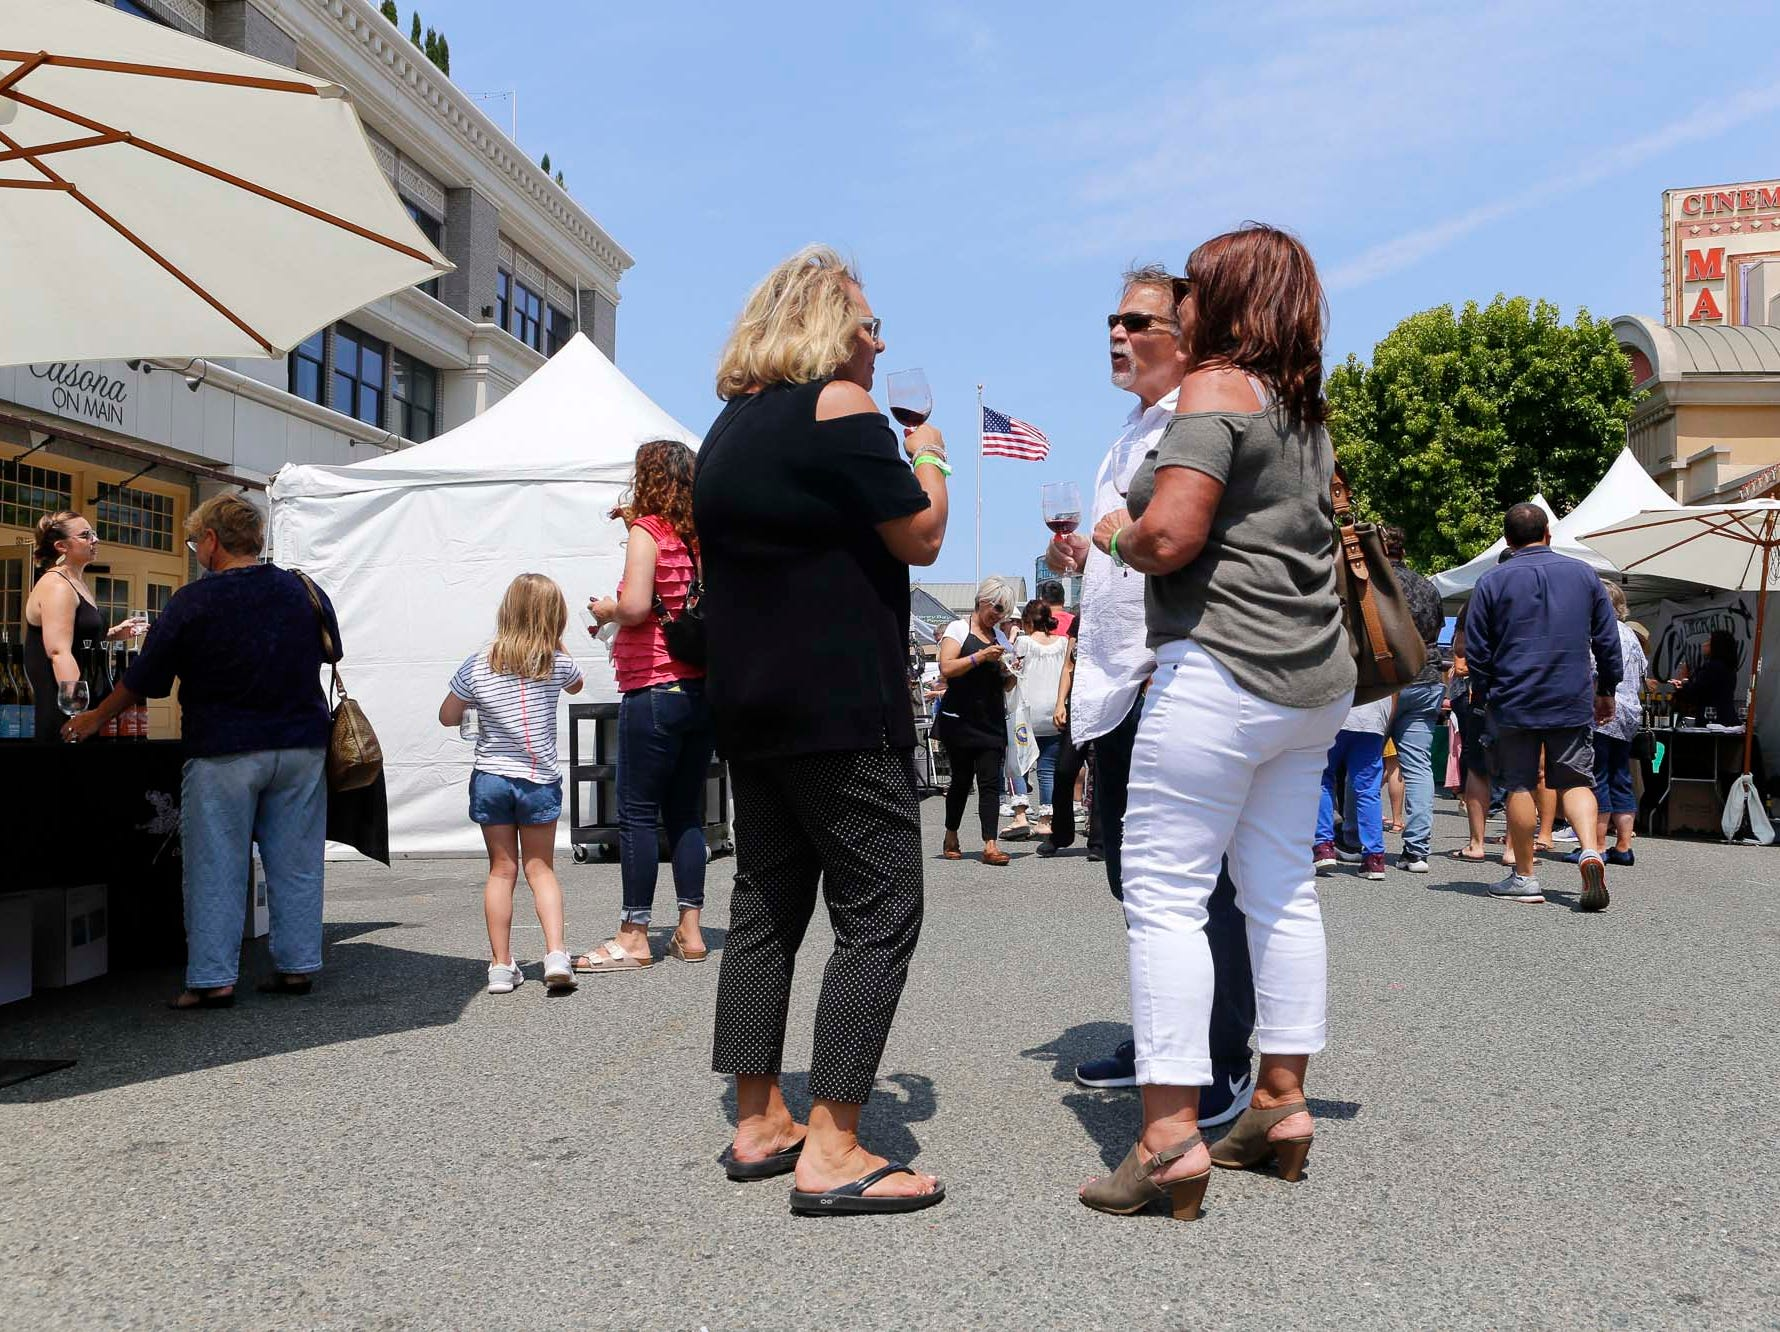 Attendees converse between sampling wines during the 2018 Salinas Valley Food and Wine Festival which takes place on Main Street in Old Town Salinas on Saturday, August 11, 2018.